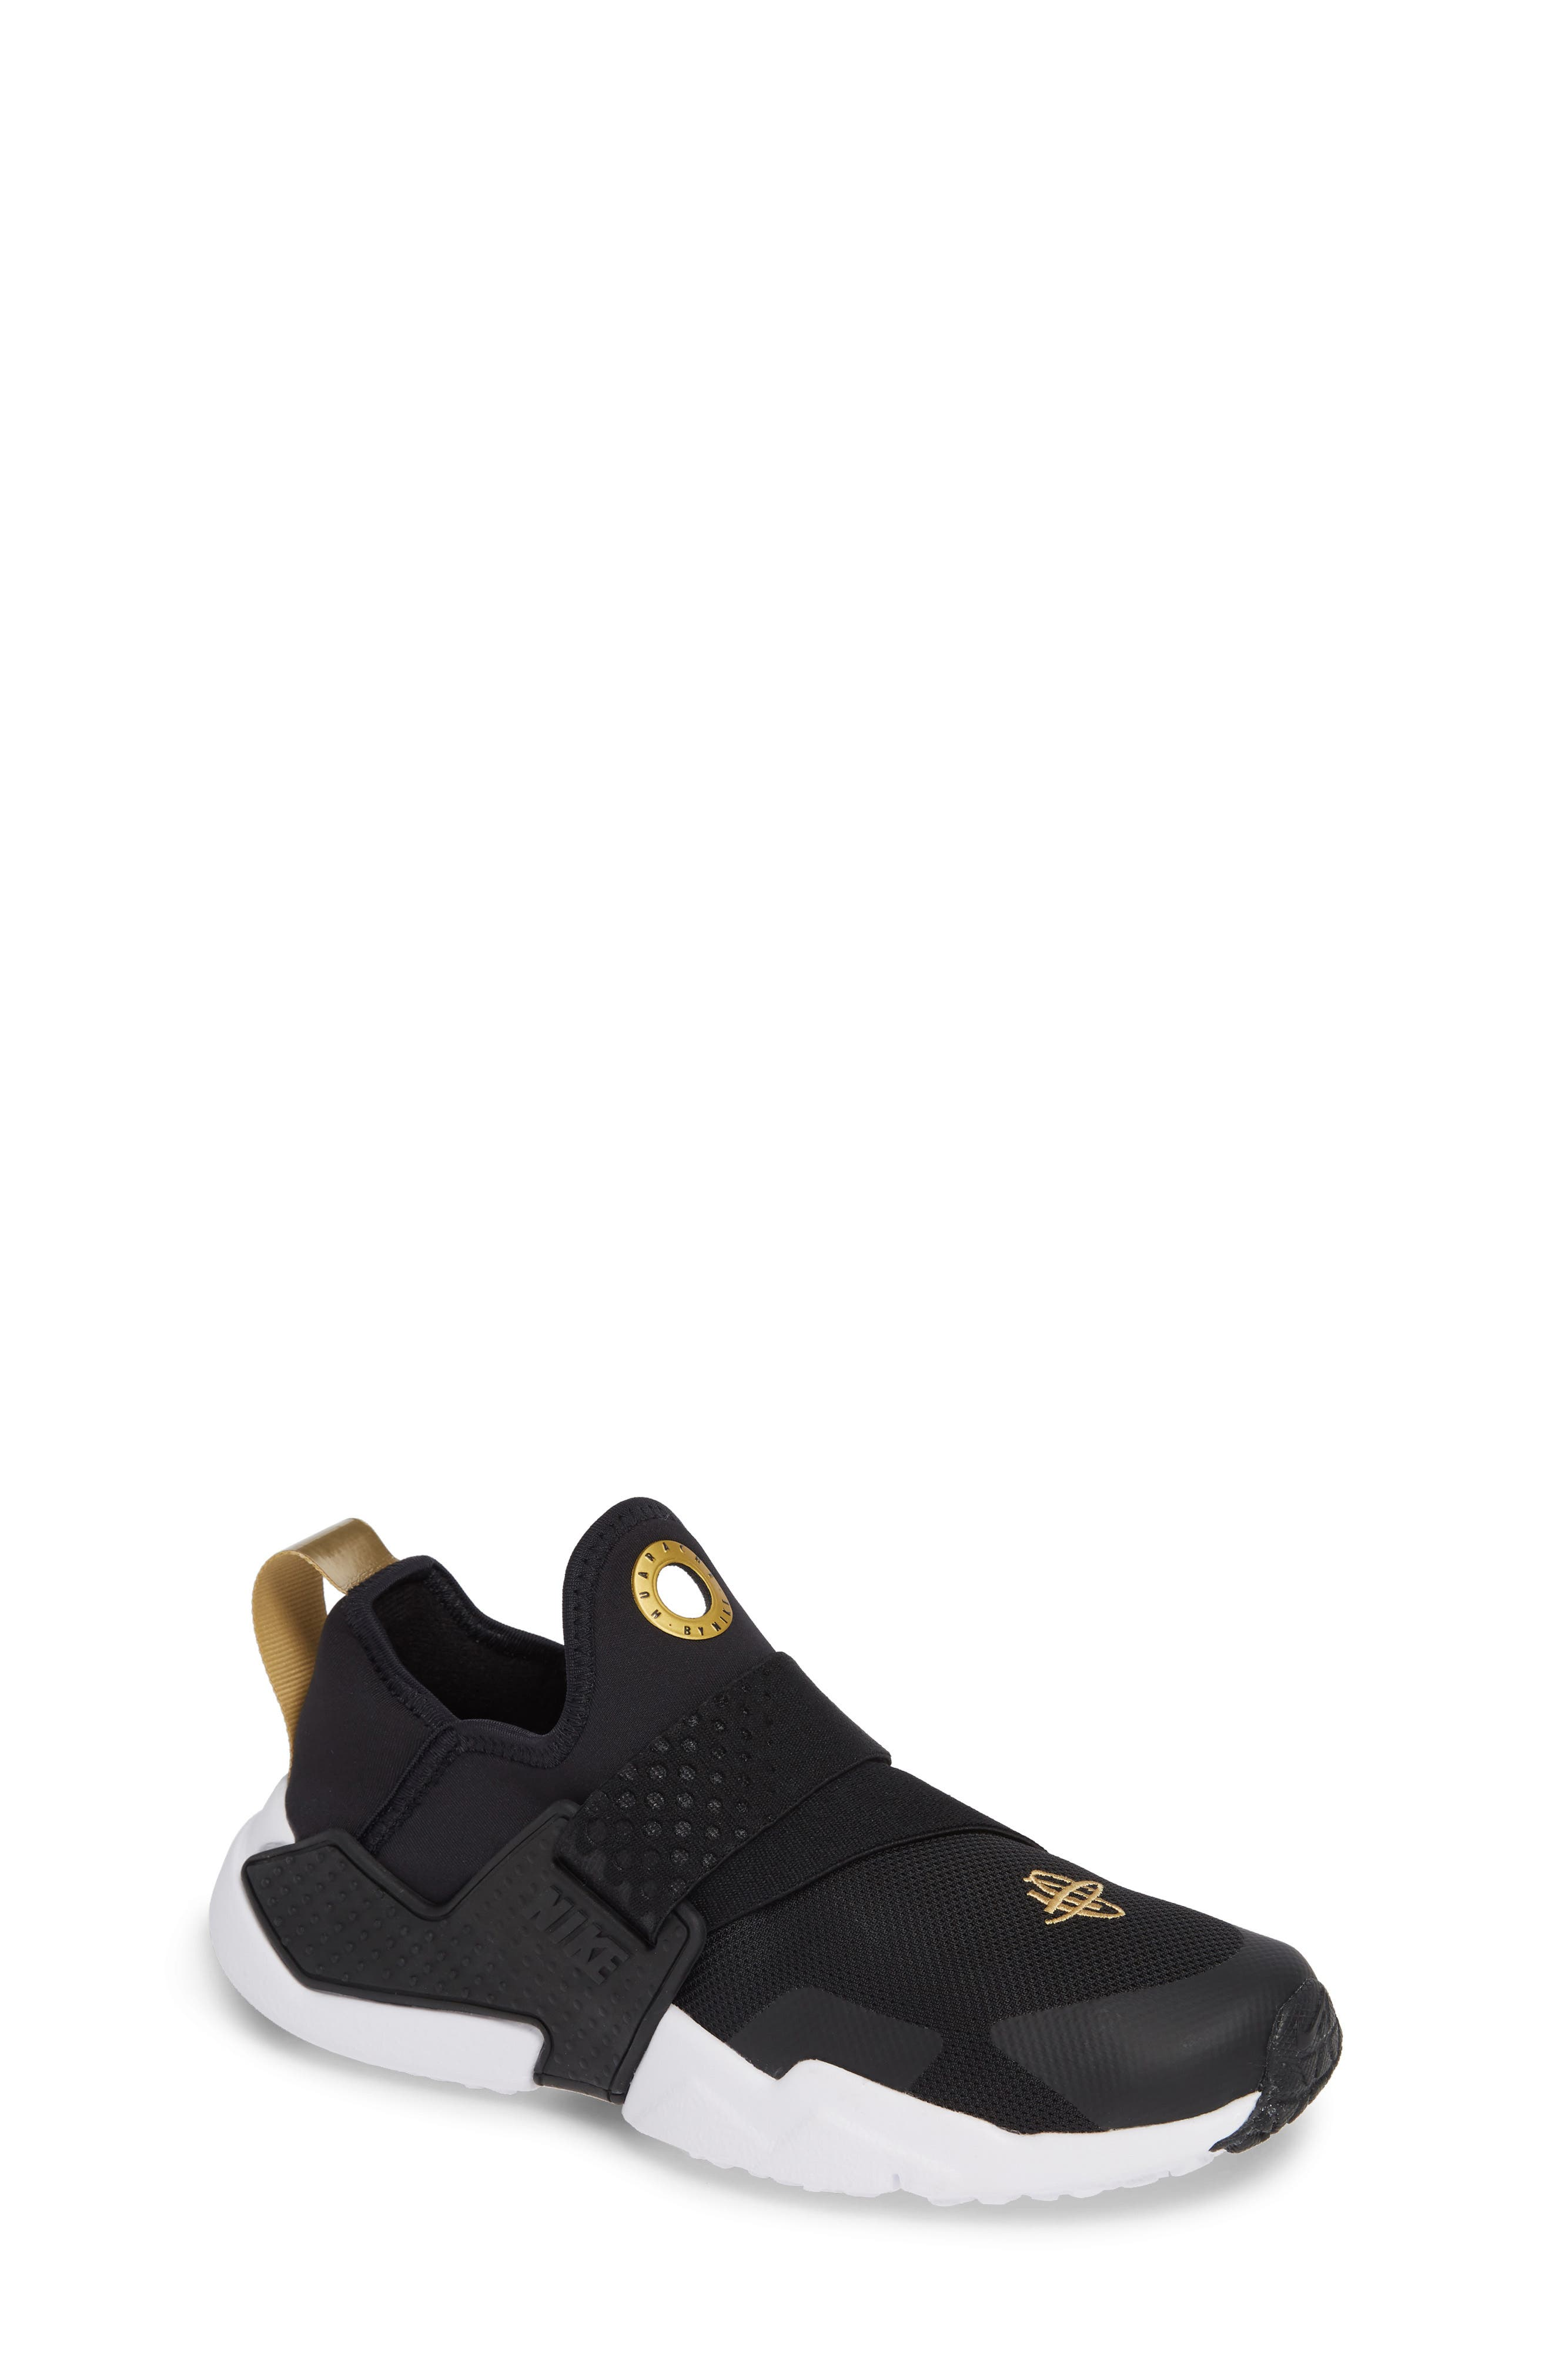 Huarache Extreme Sneaker,                             Main thumbnail 1, color,                             BLACK/ METALLIC GOLD/ WHITE